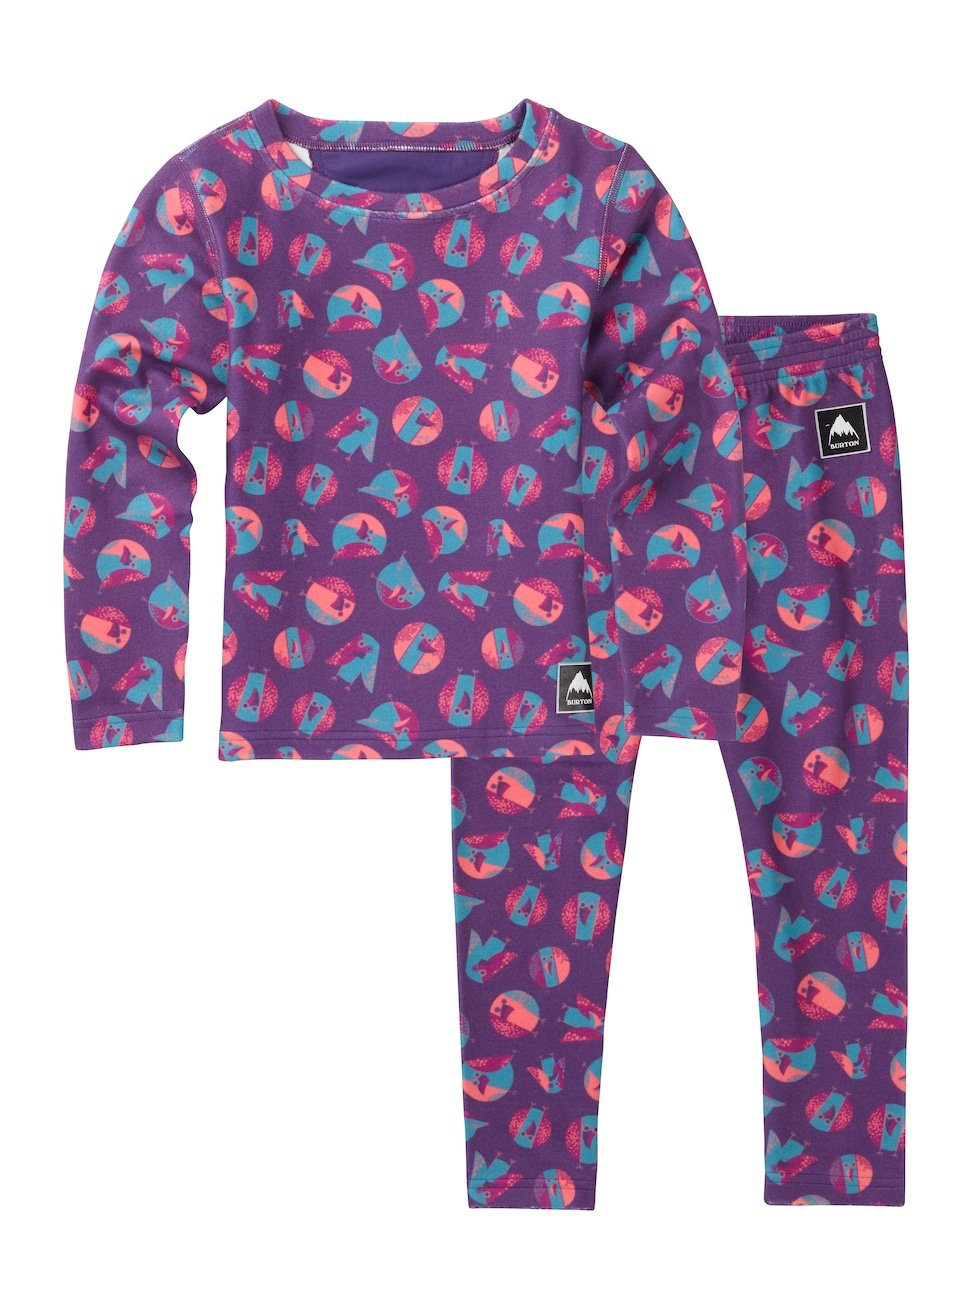 Burton Kids Minishred Fleece Top Set, Birds, 2T 132141